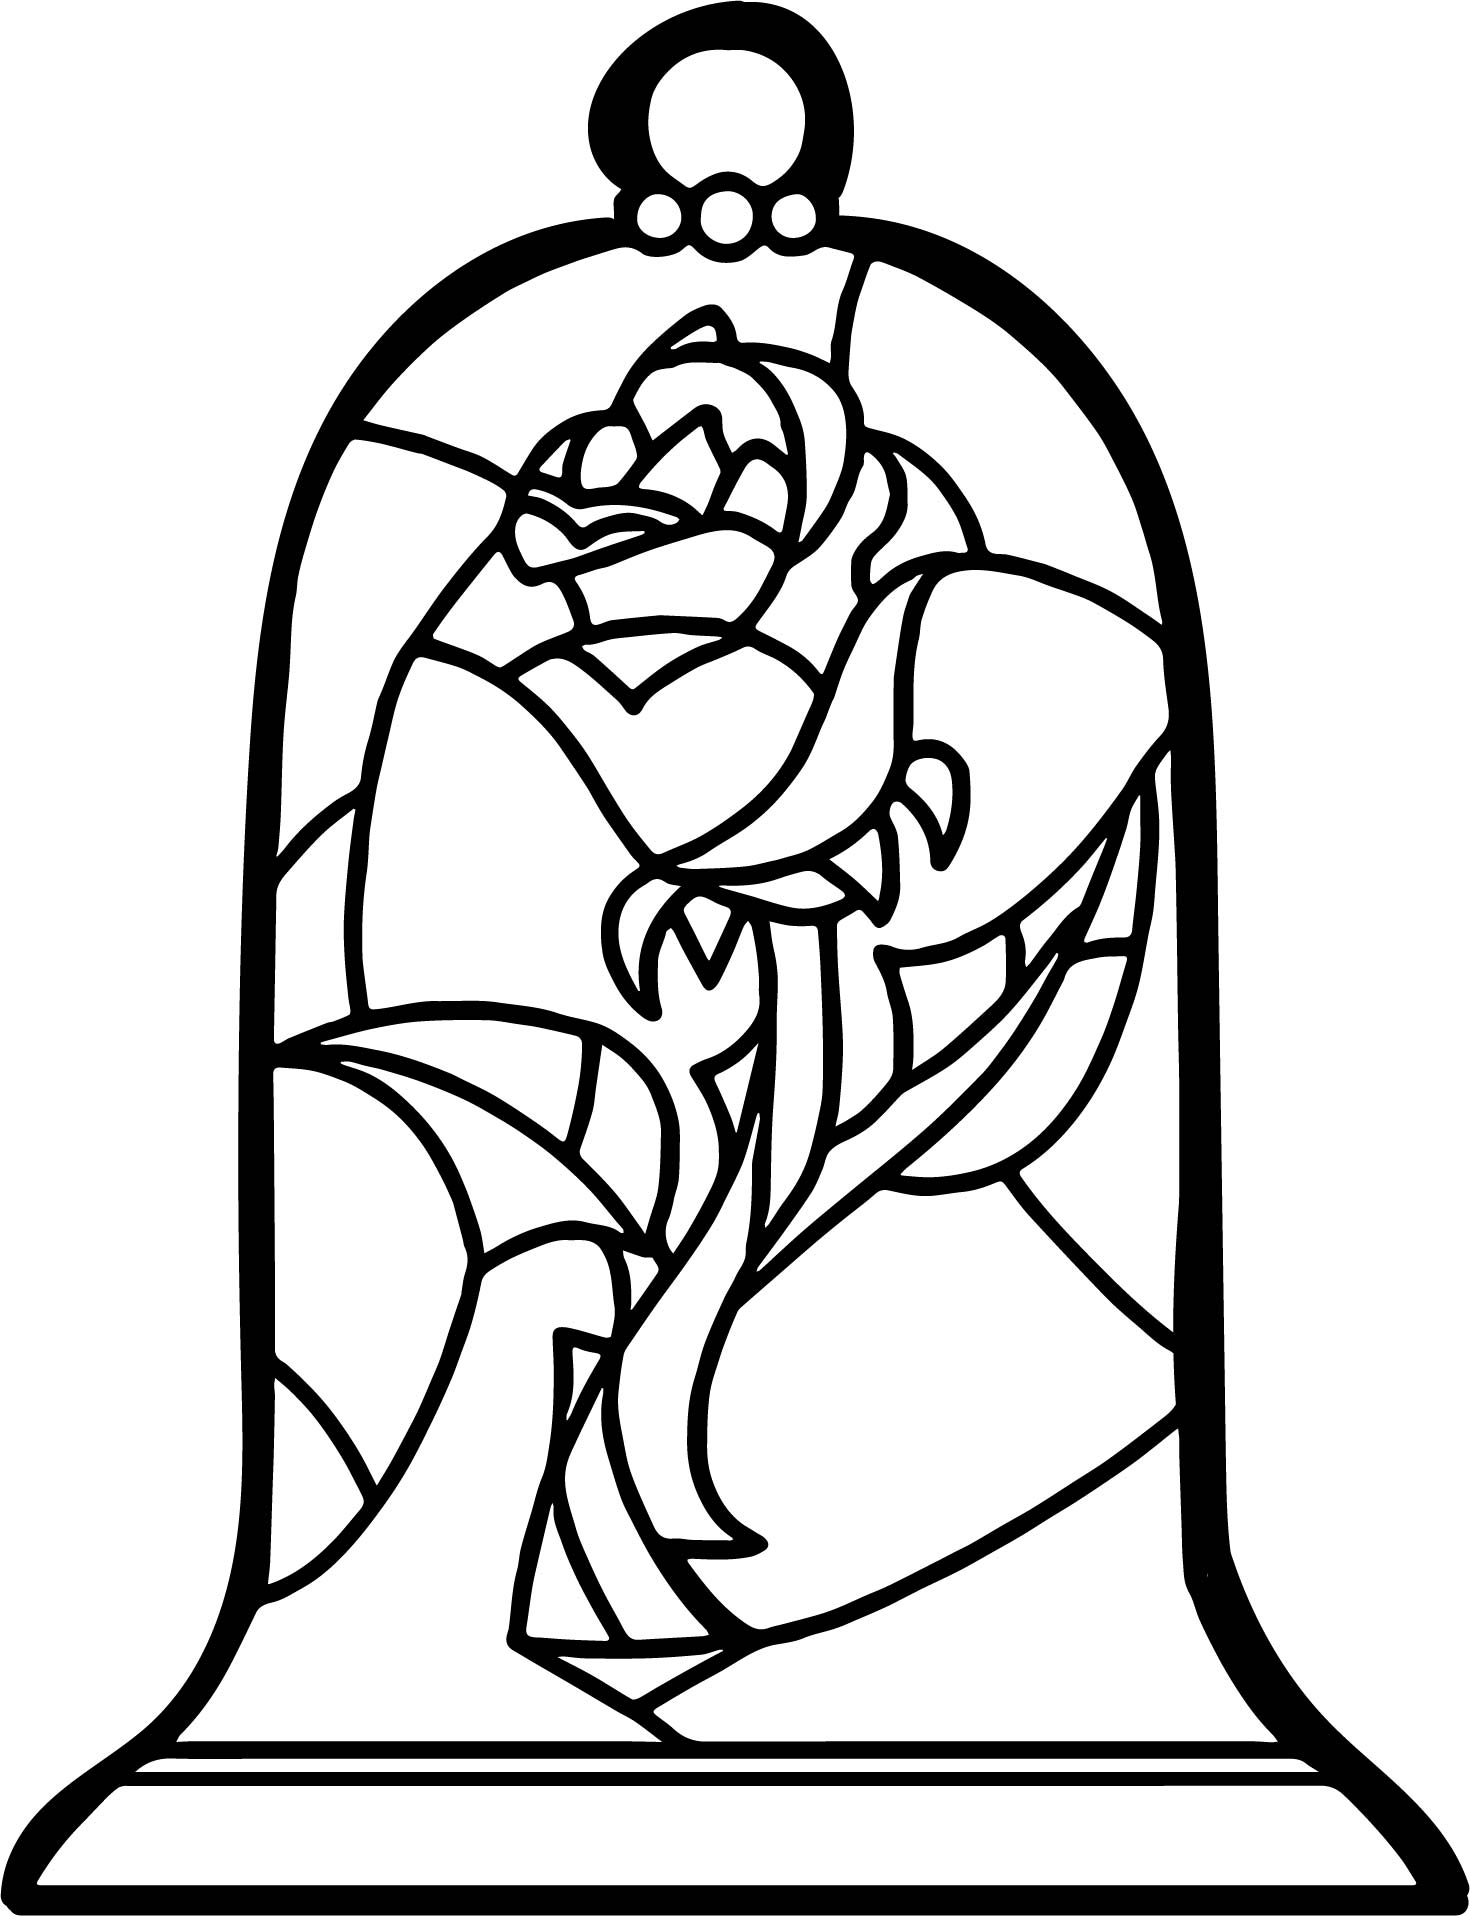 beauty and the beast rose coloring pages beauty and the beast coloring pages disney coloring book and pages coloring beast the rose beauty